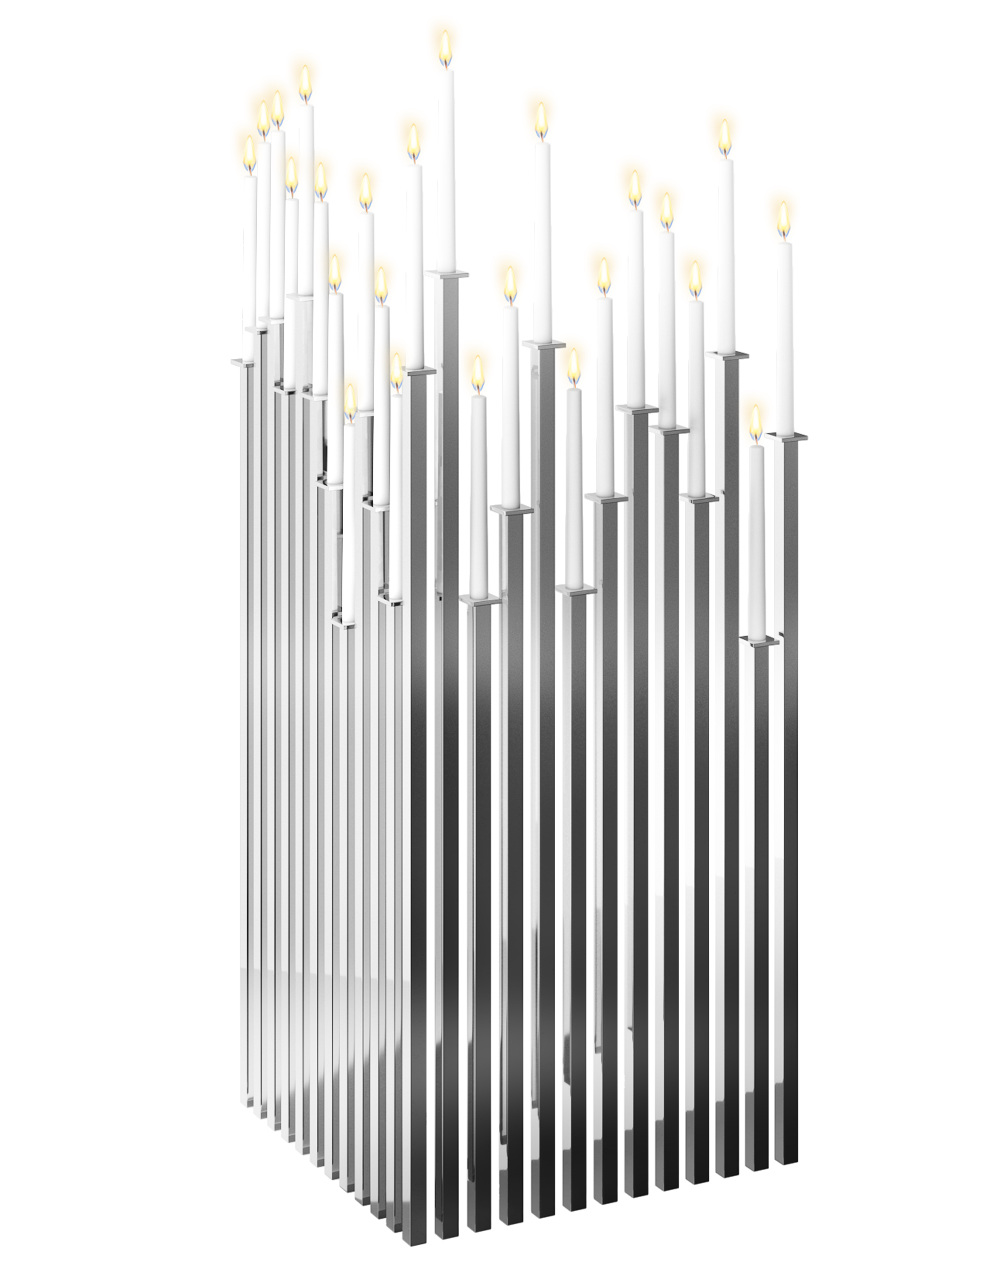 6 Tall Luxury Modern Silver Steel Candelabra Room Divider Screen Candle Holder Designer Jennava Laska Portfolio Furniture Sculpture Film